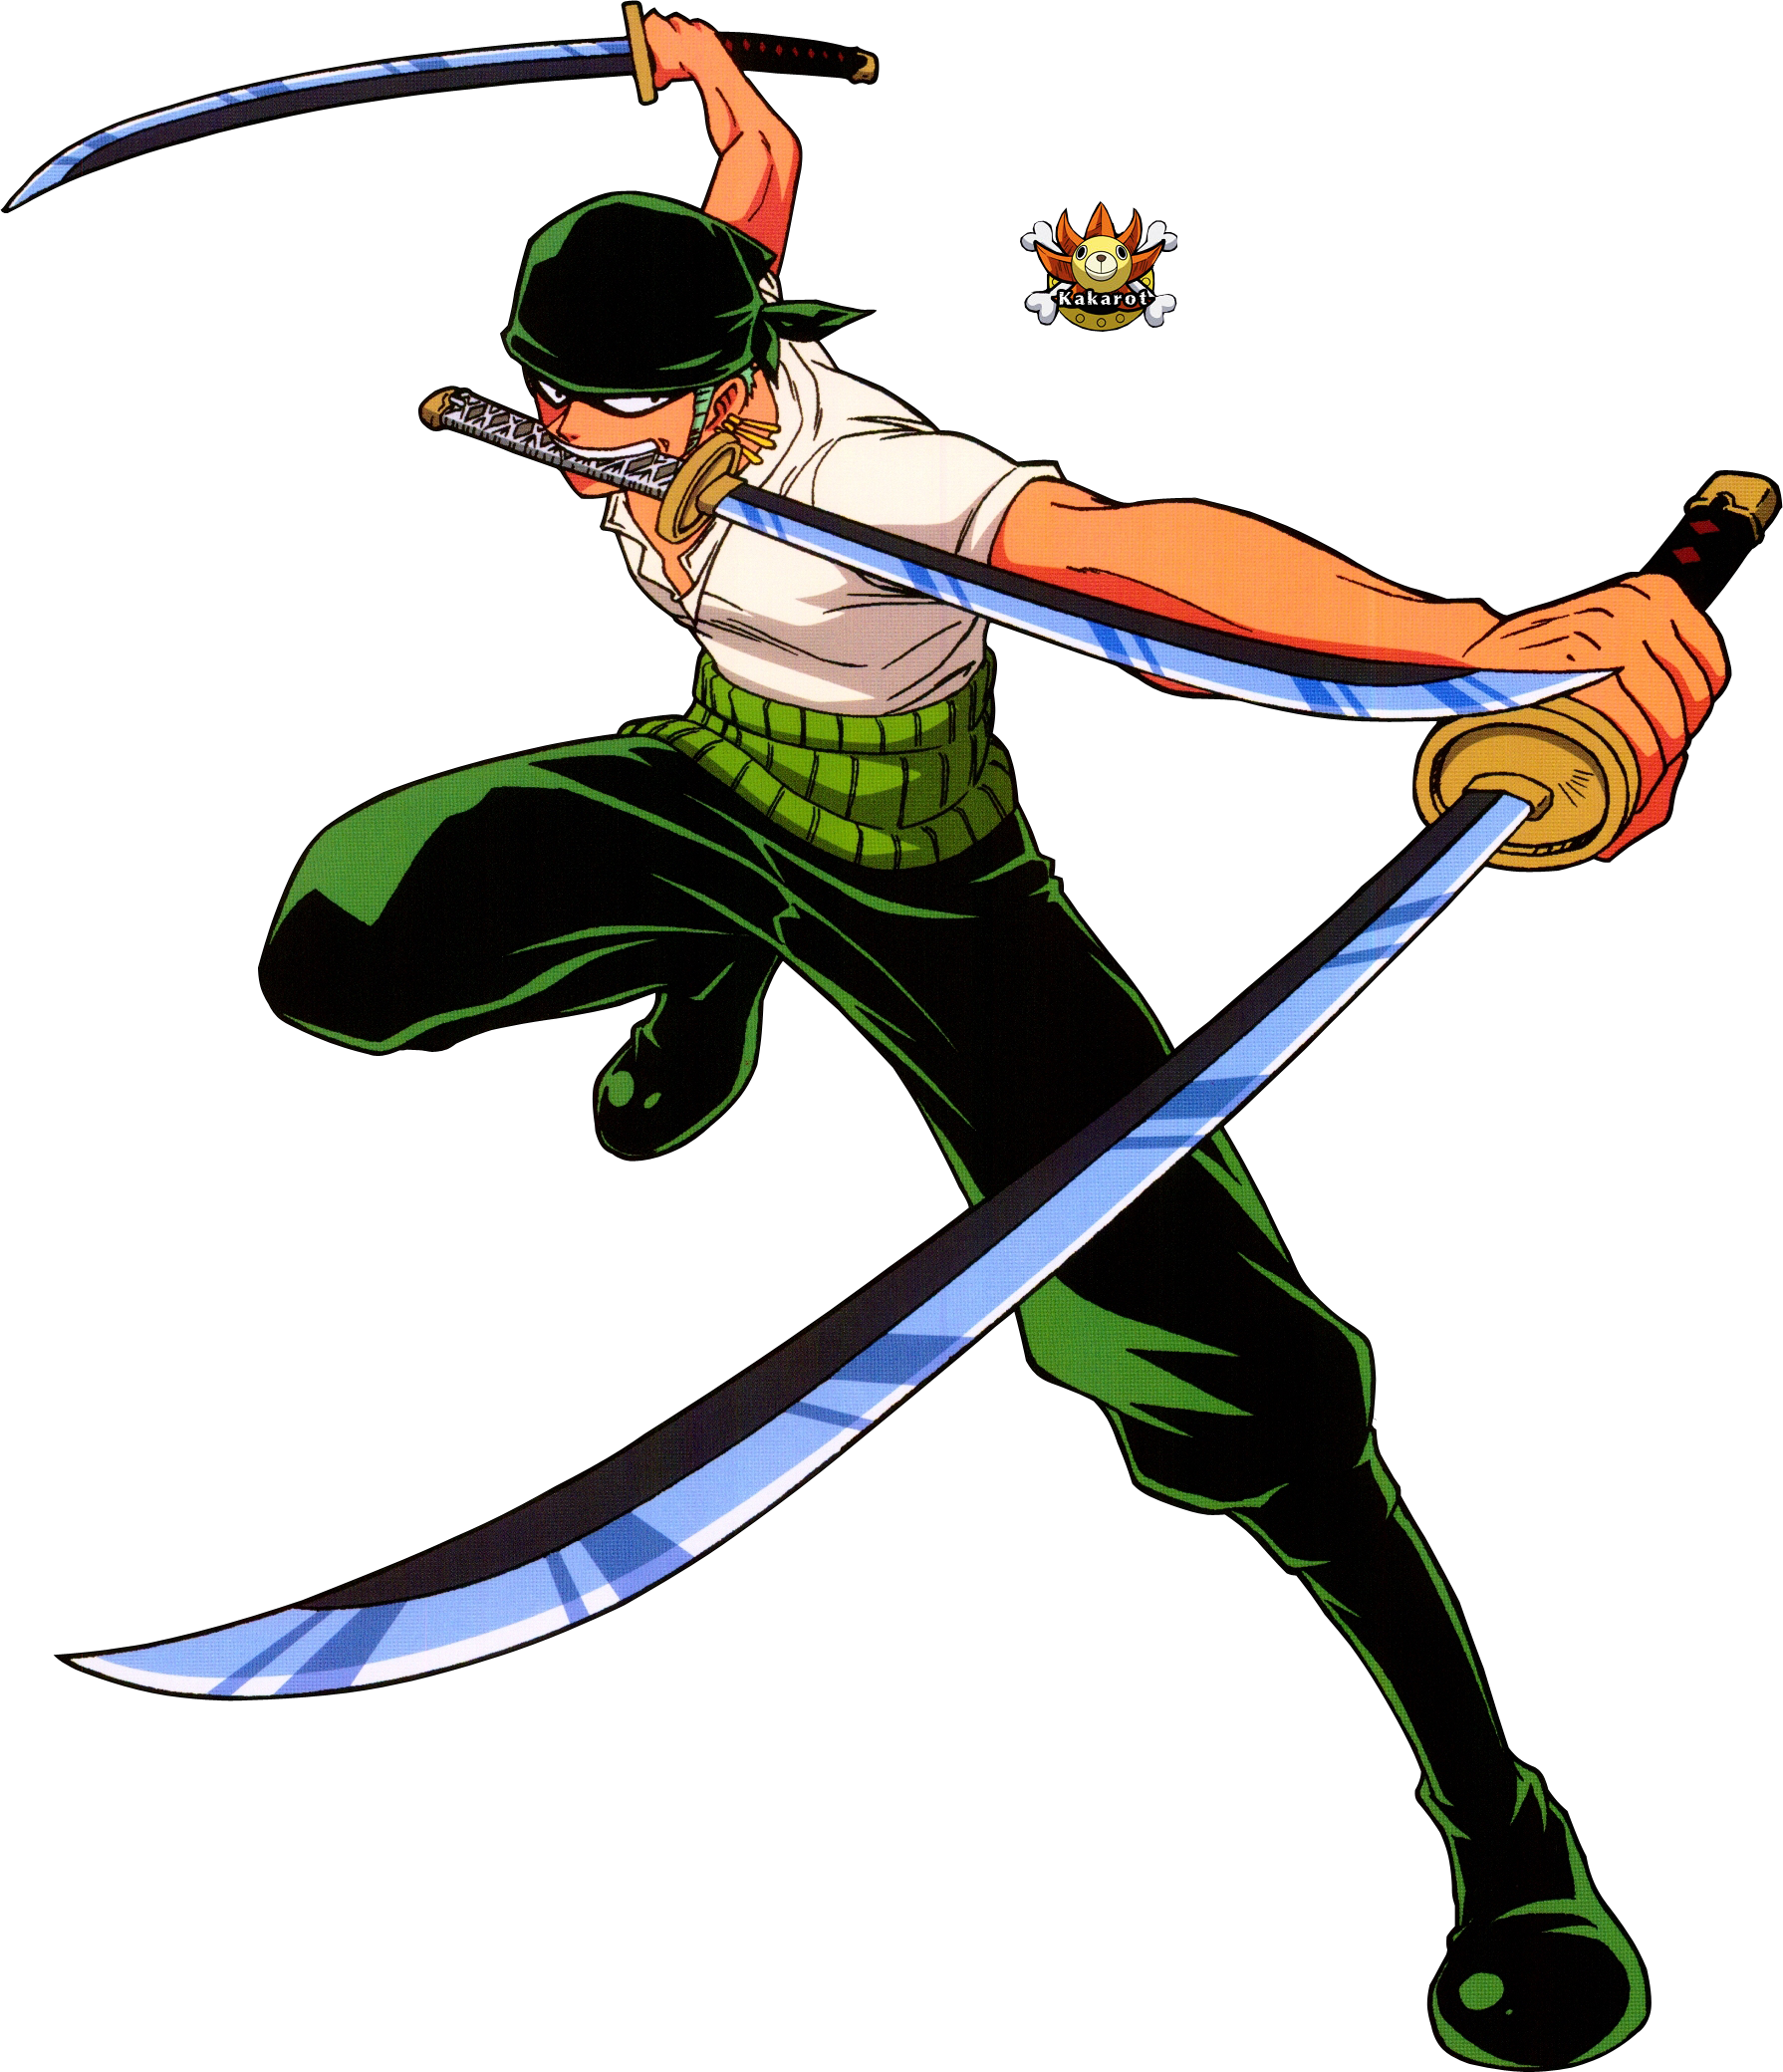 Zoro One Piece: Http://www.renders-graphiques.fr/image/upload/normal